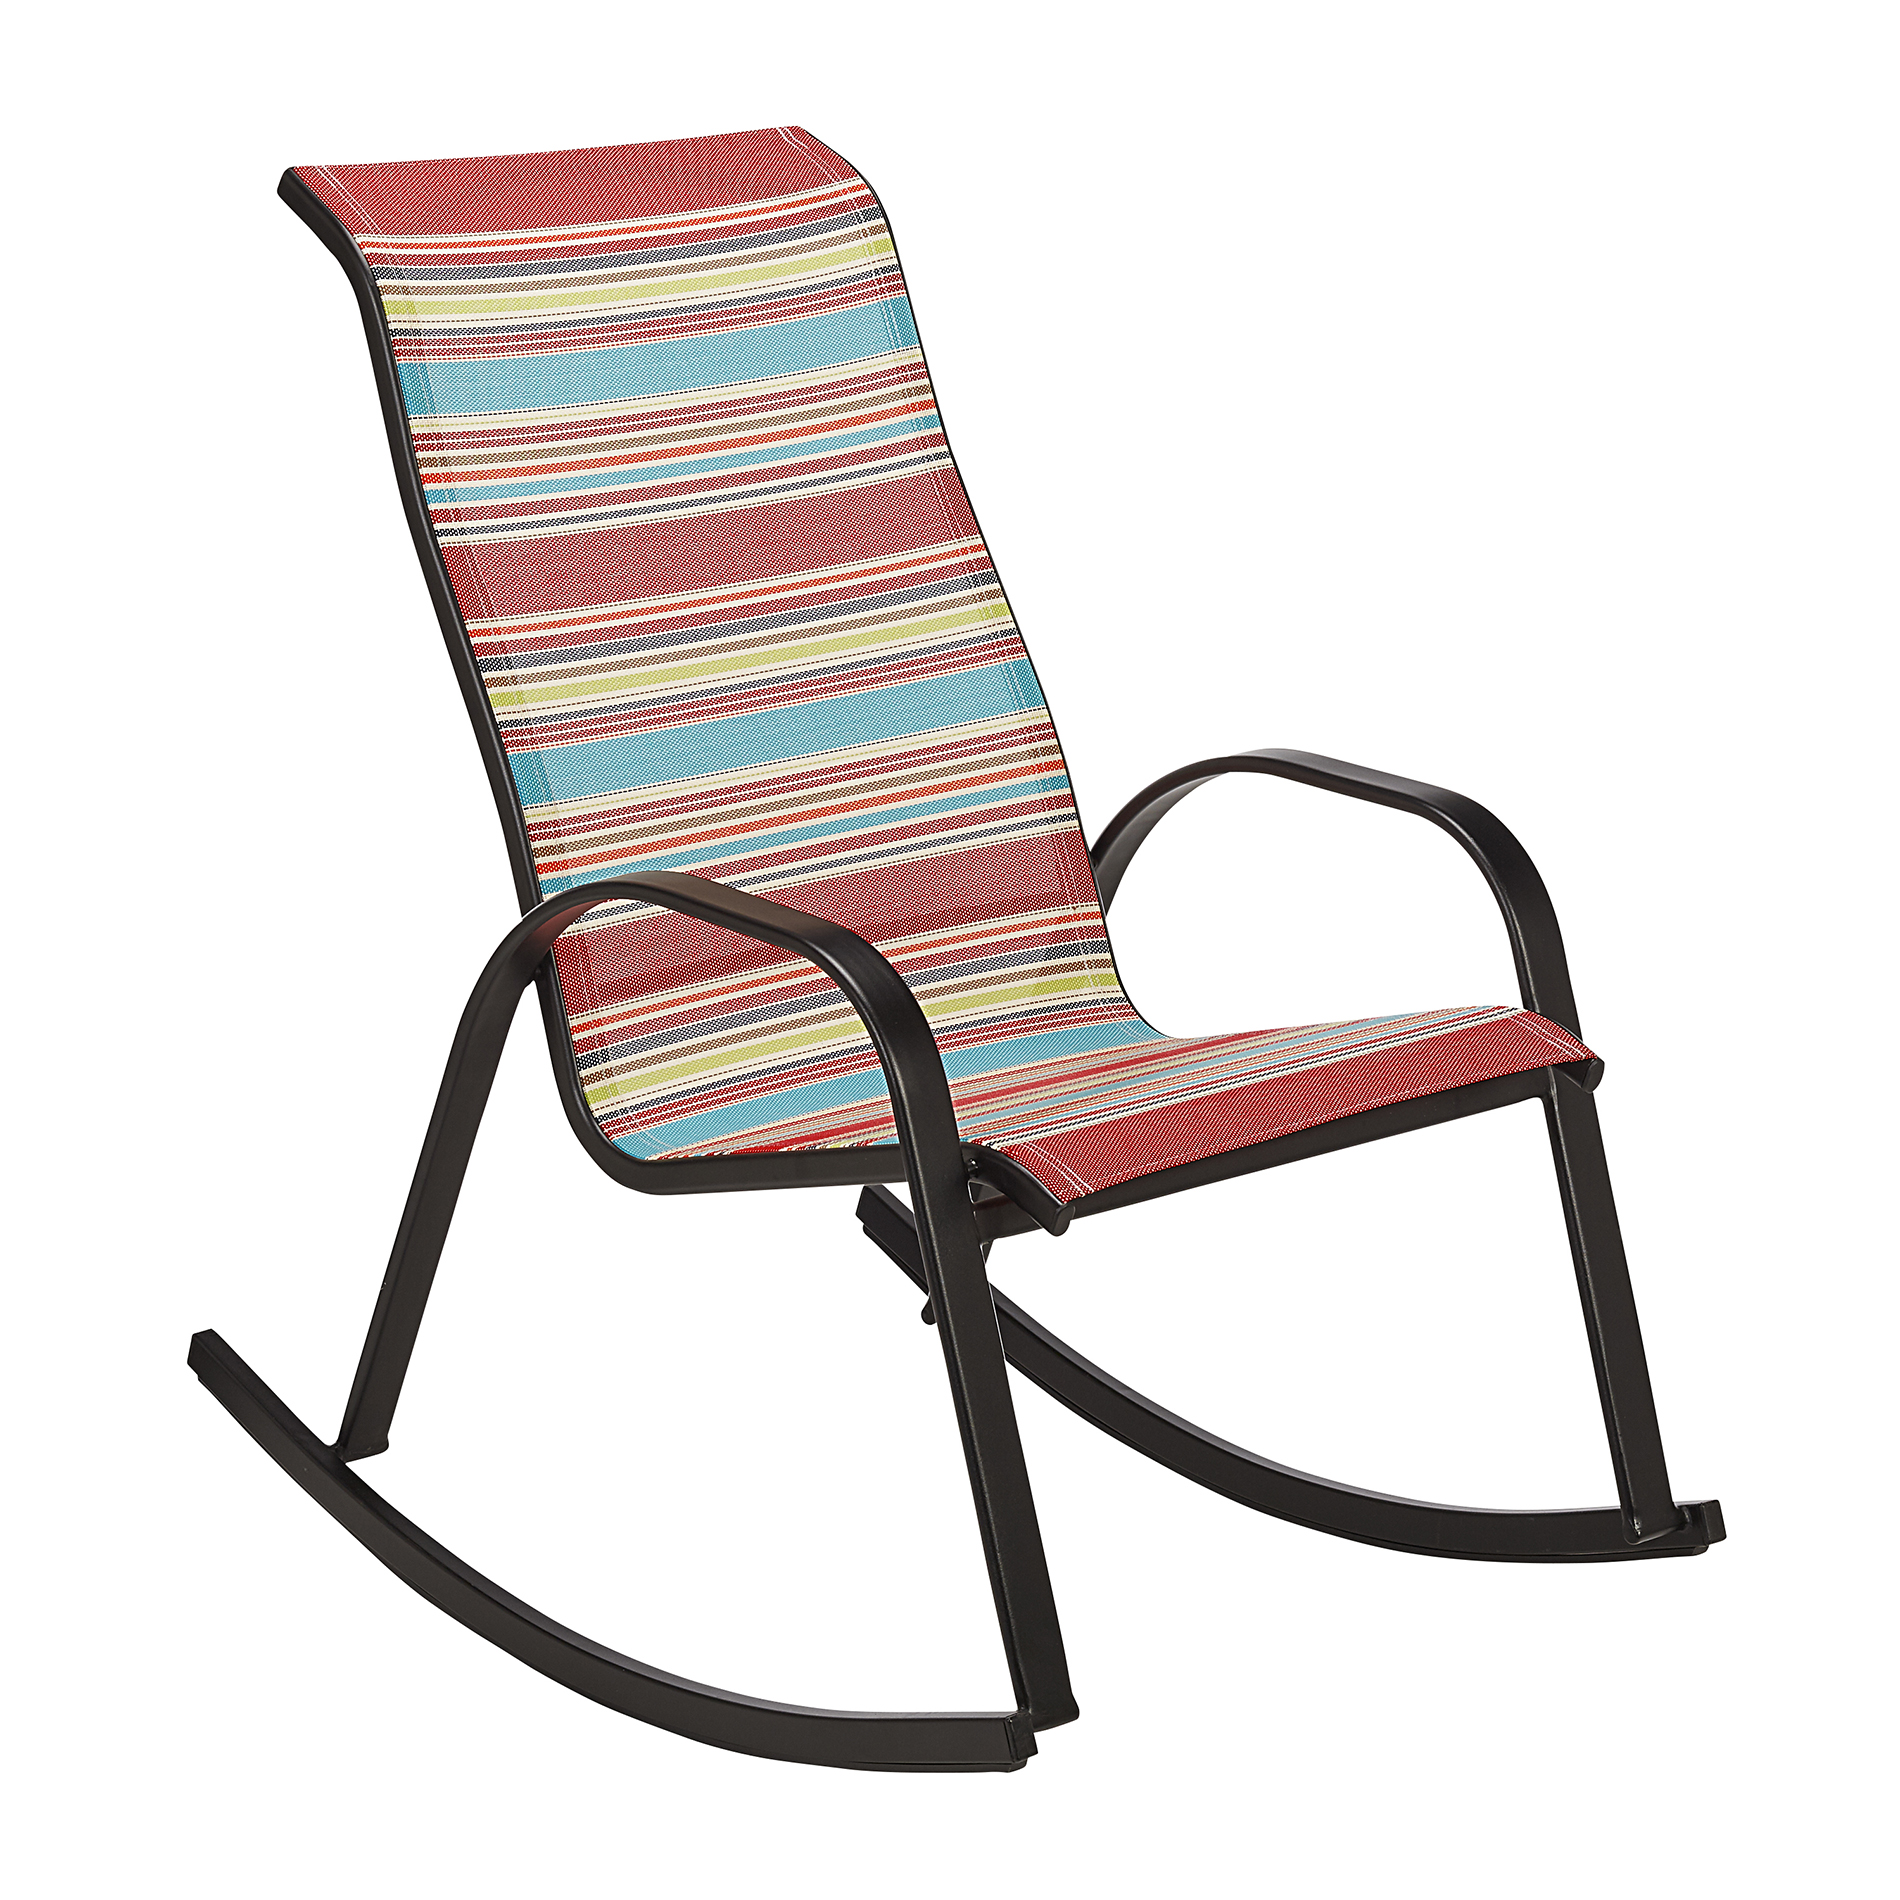 outdoor chairs kmart for tweens beautiful rocker patio furniture